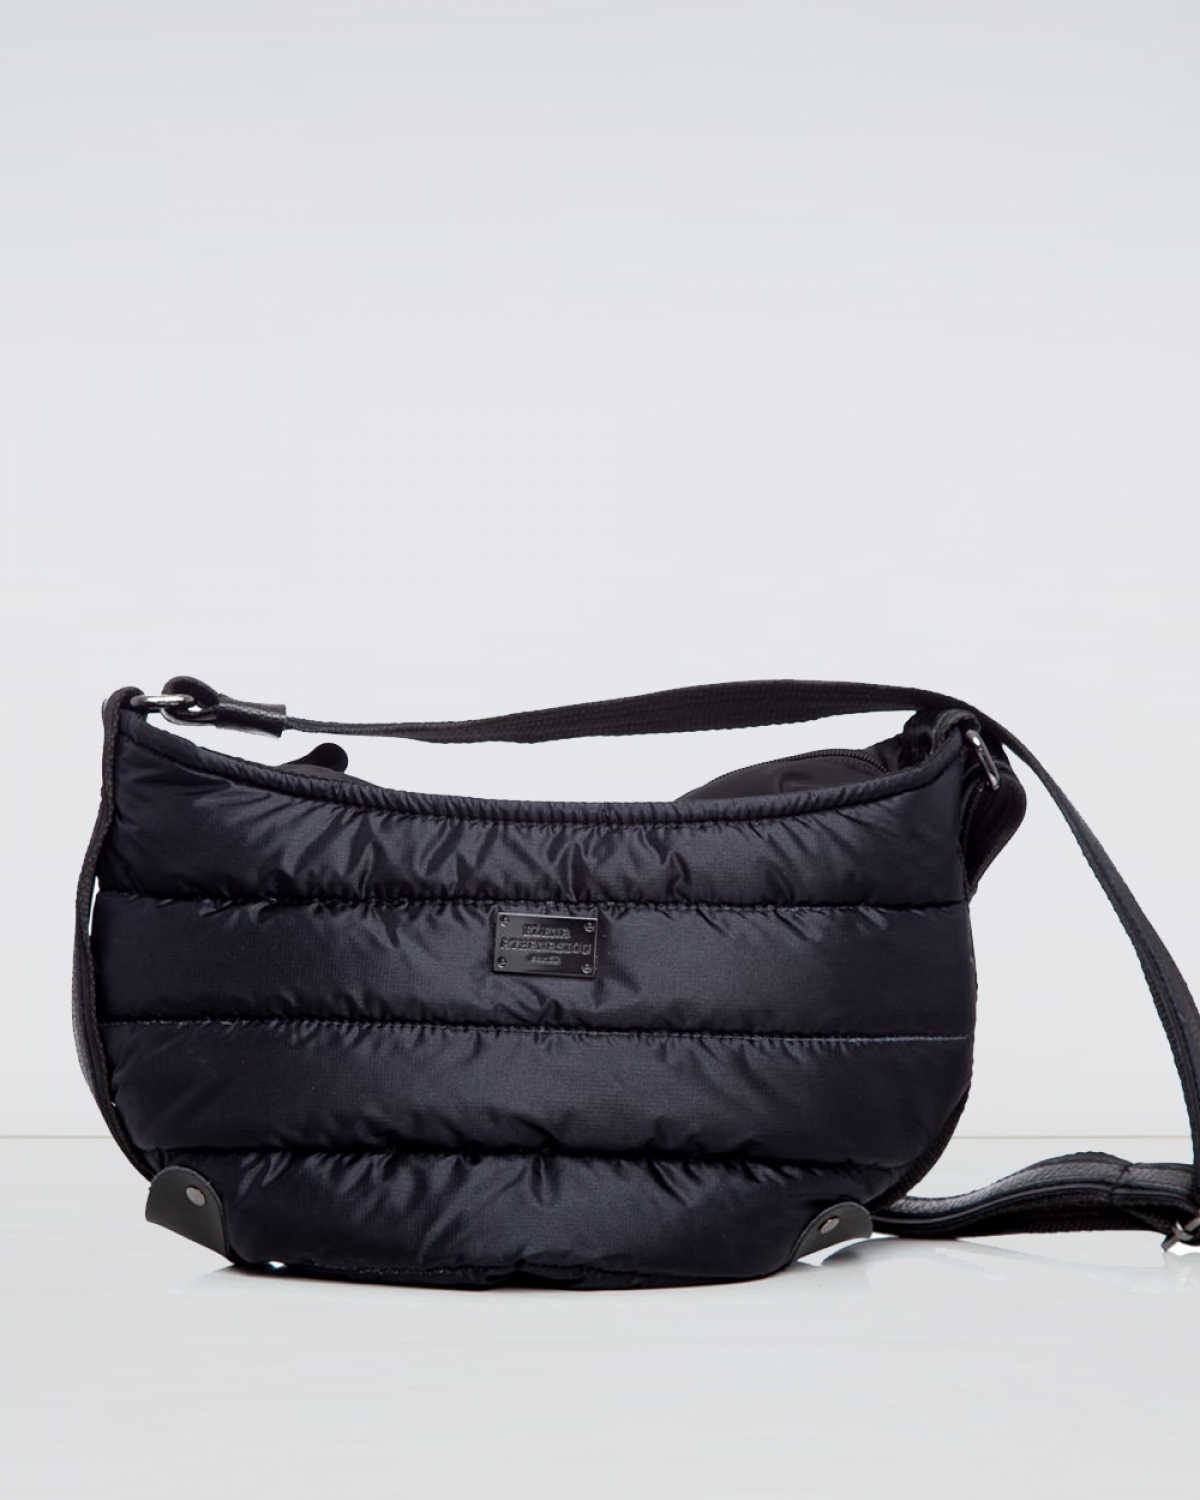 Black Puffer Large Bοdy Bag